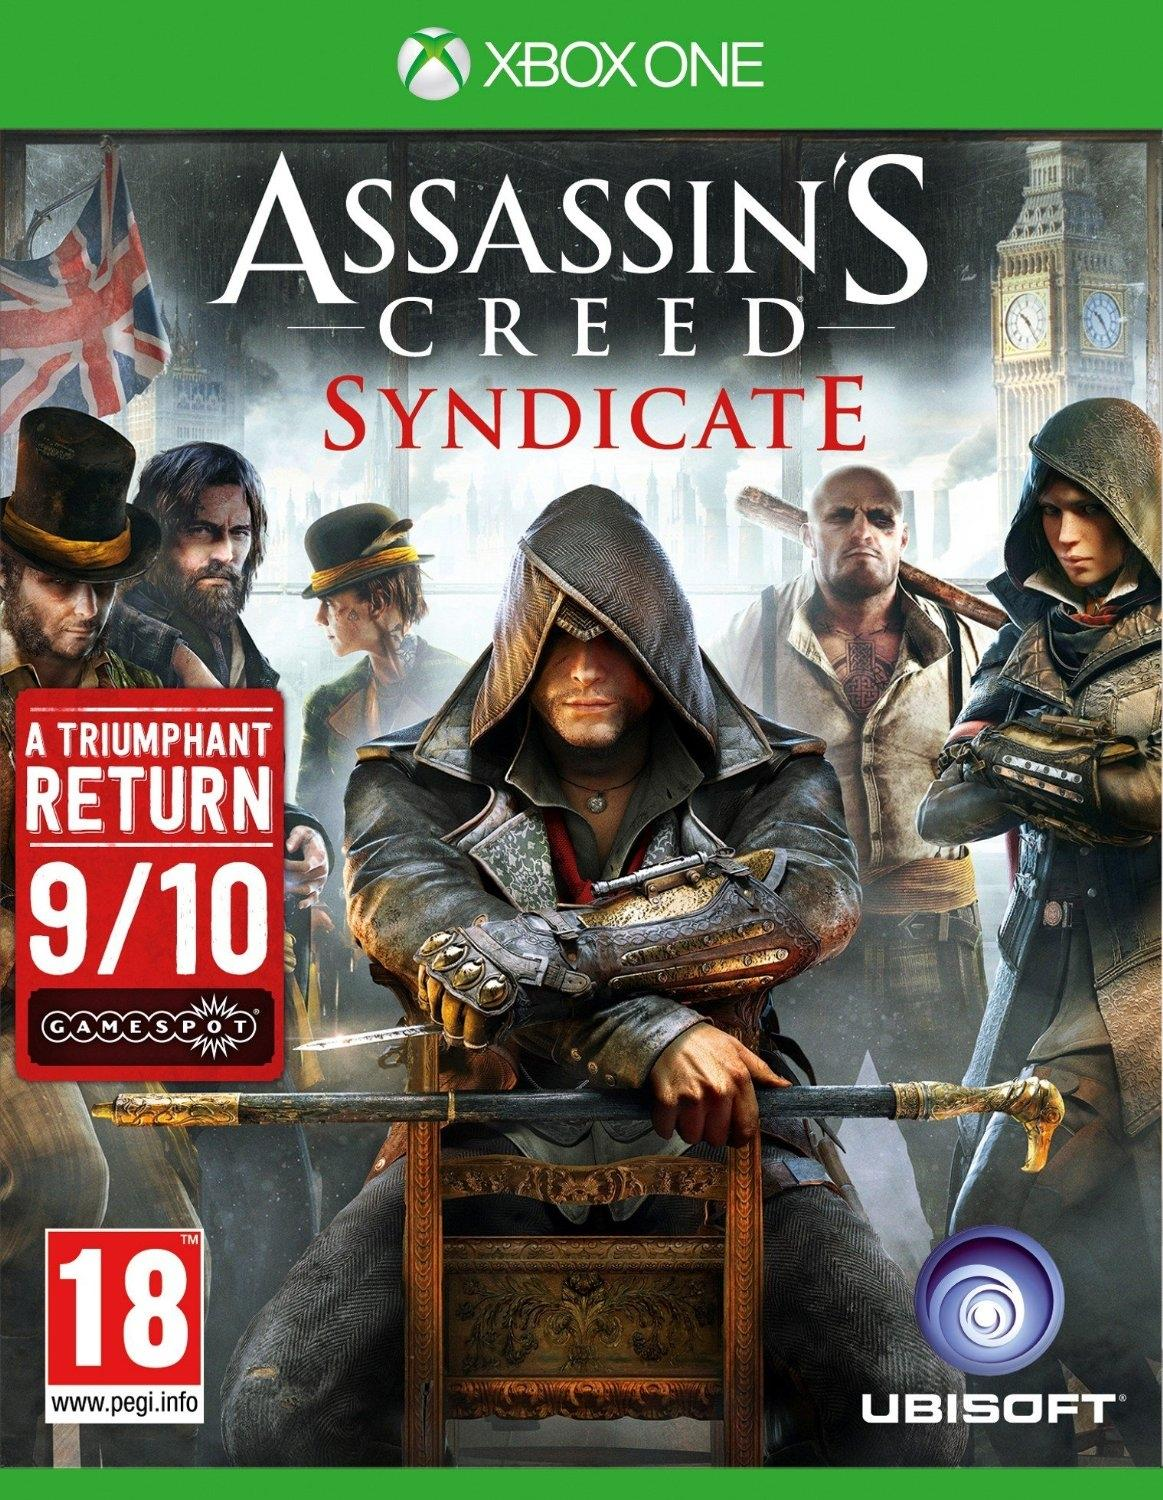 Assassin's Creed Syndicate Gaming CD For Xbox One